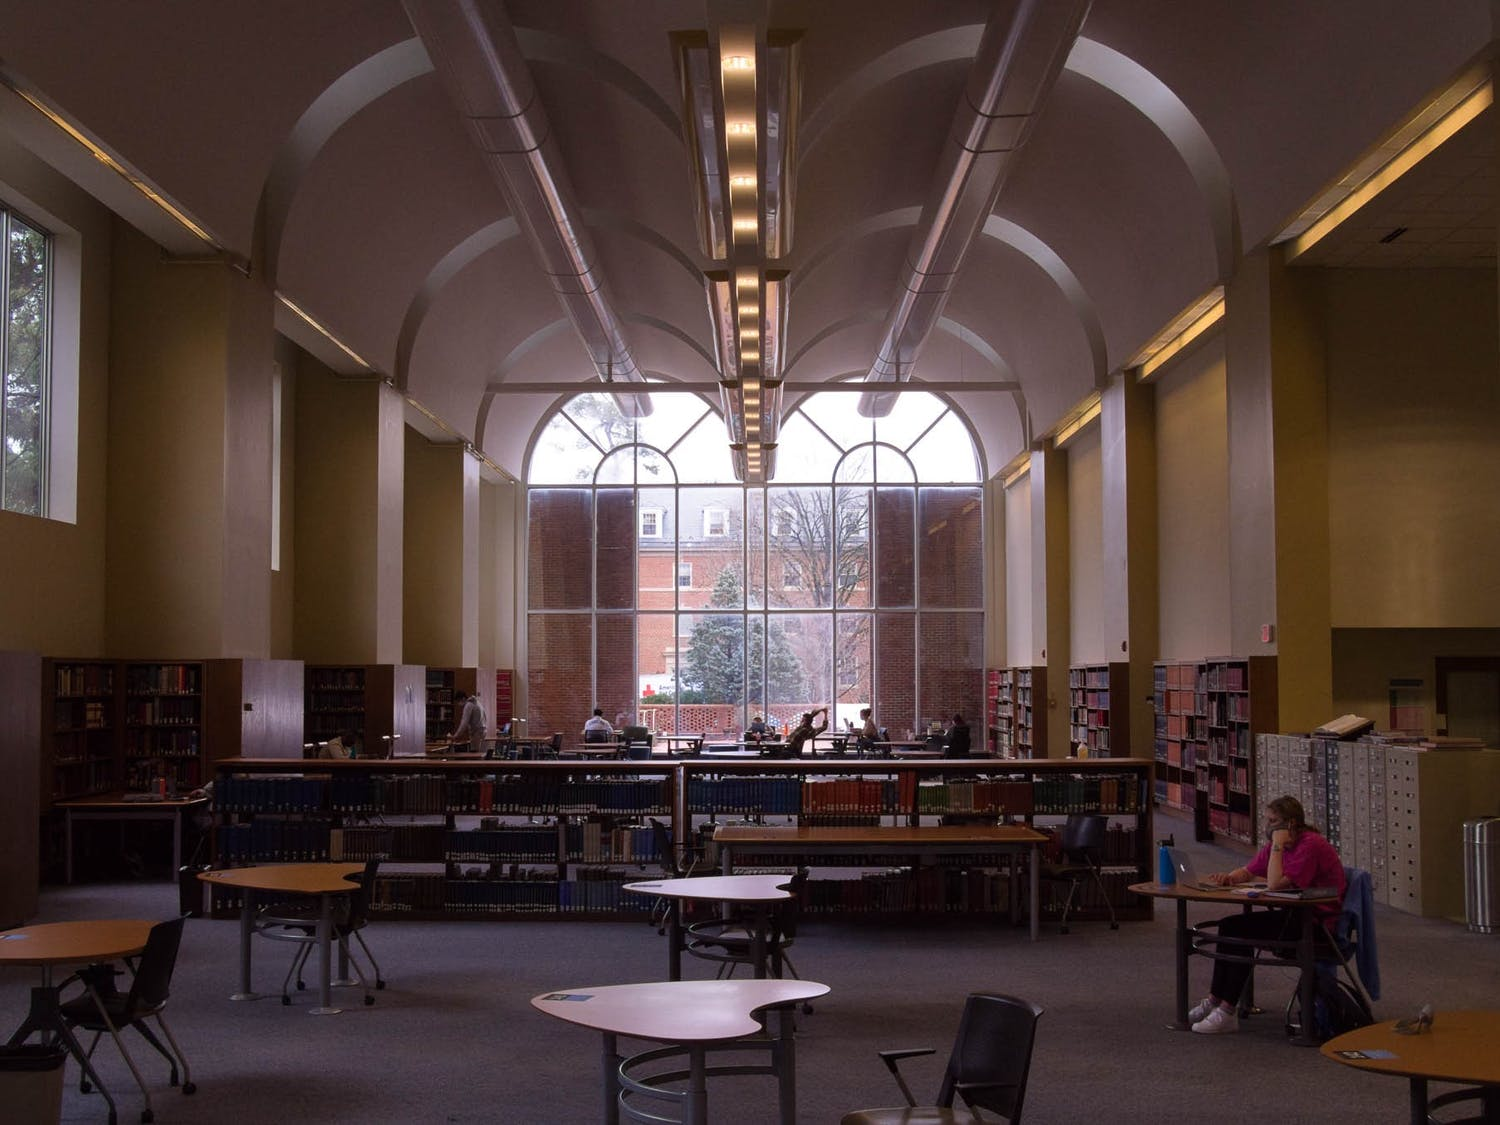 Students study in Davis Library on Tuesday, Jan. 26, 2021.